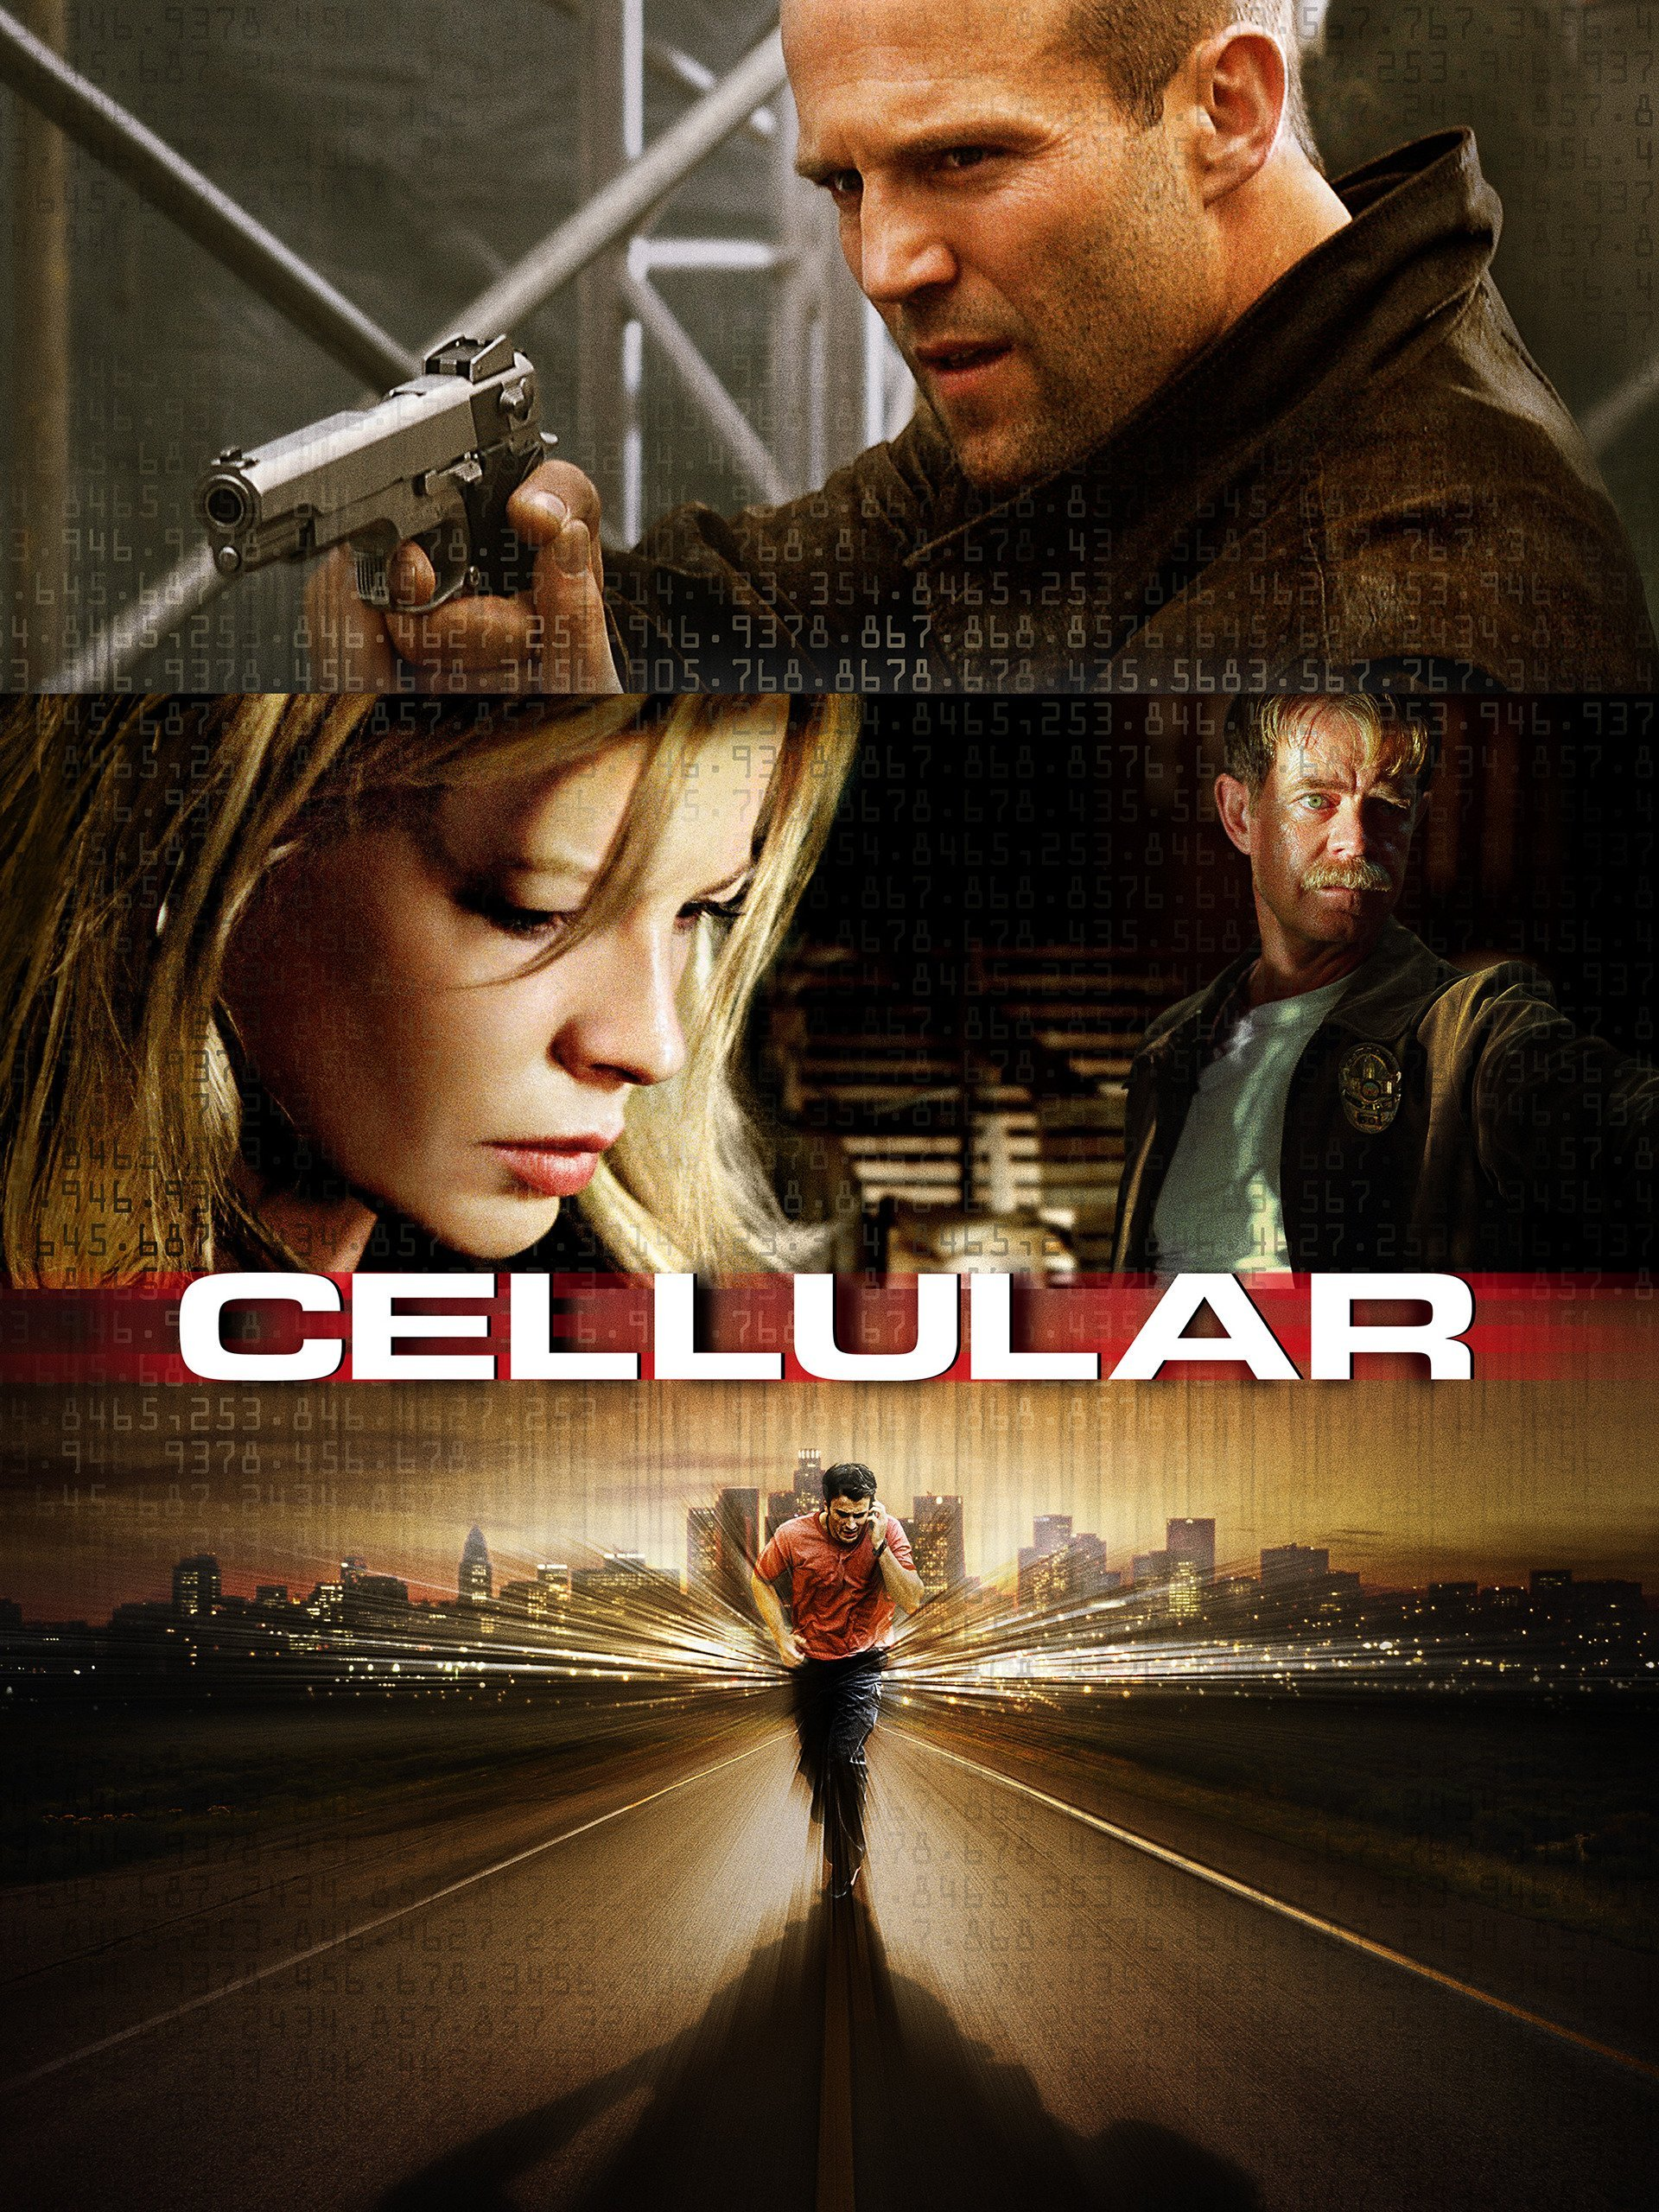 Image result for Cellular movie poster